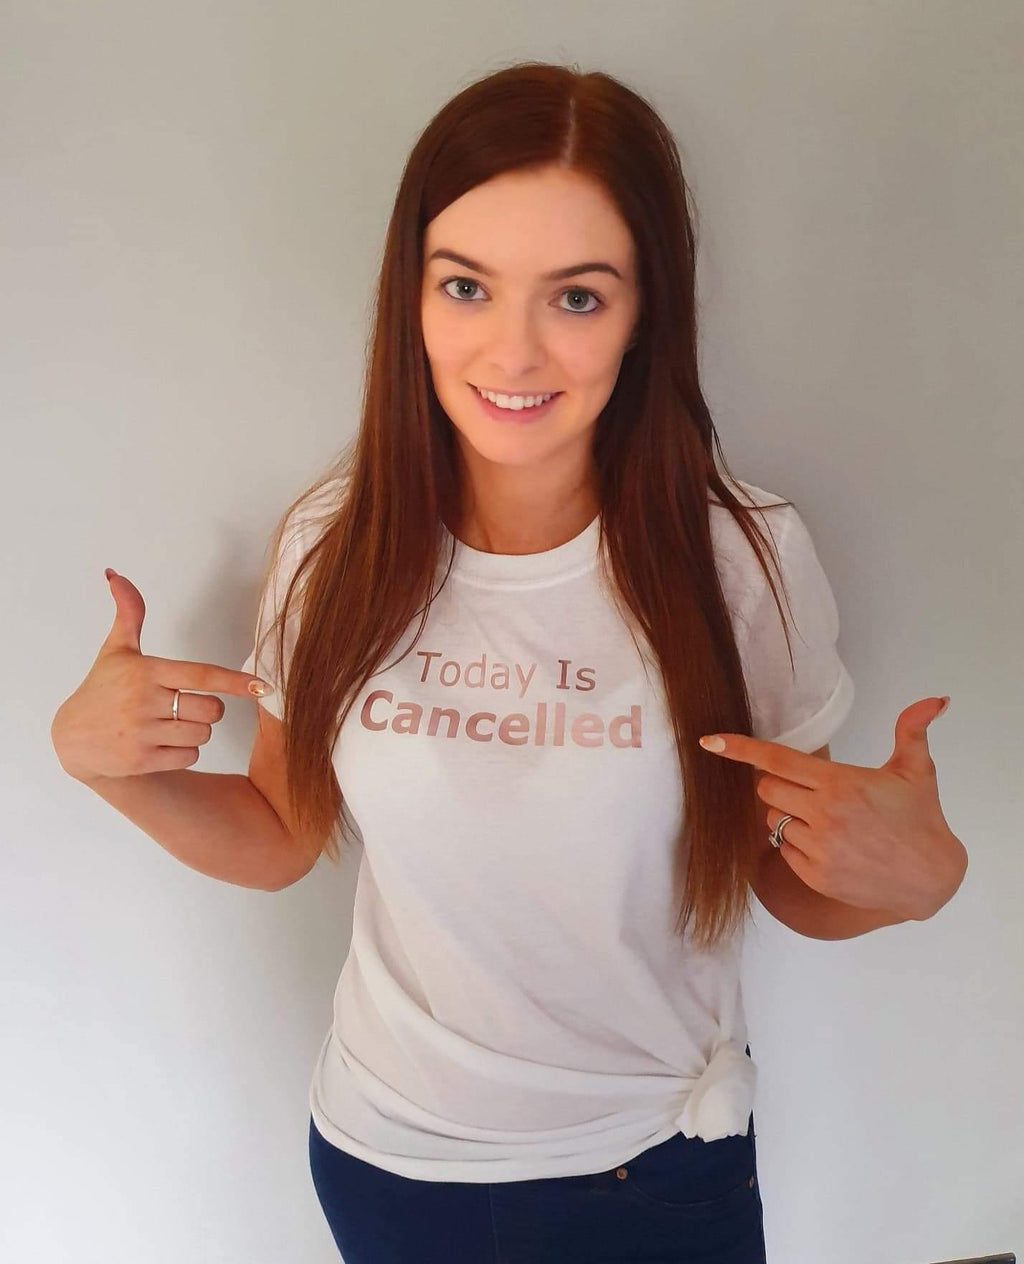 Today Is Cancelled T-shirt